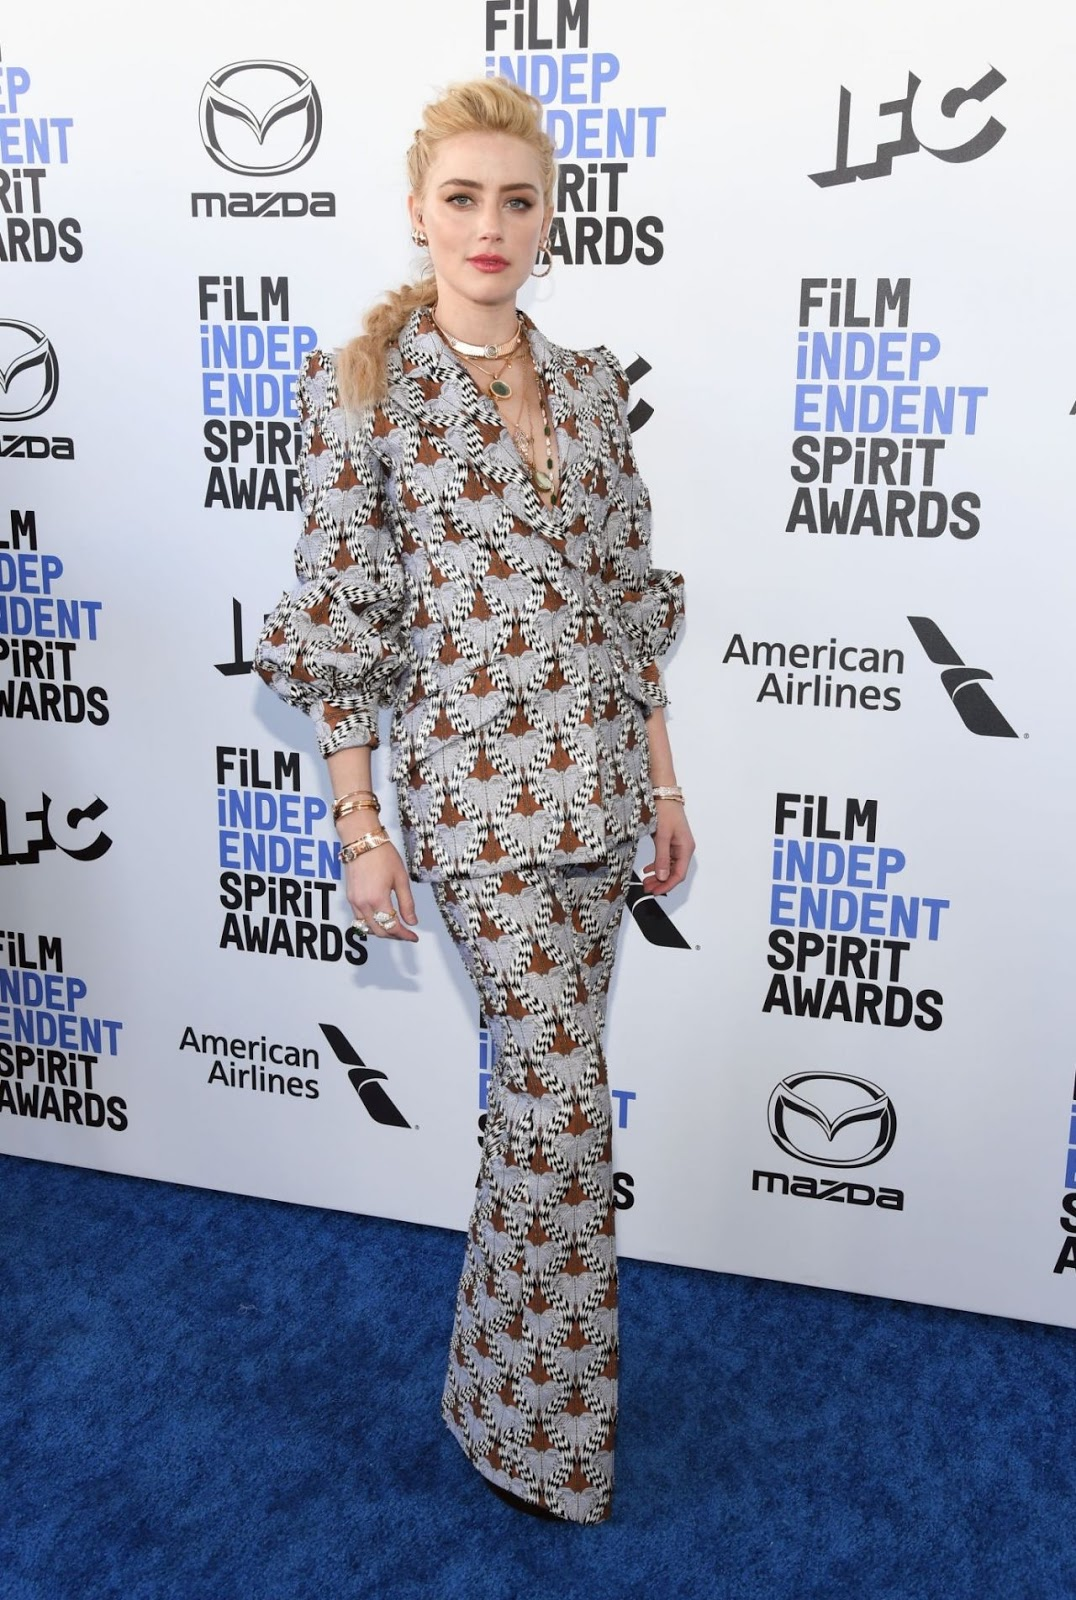 Amber Heard - Film Independent Spirit Awards in Santa Monica